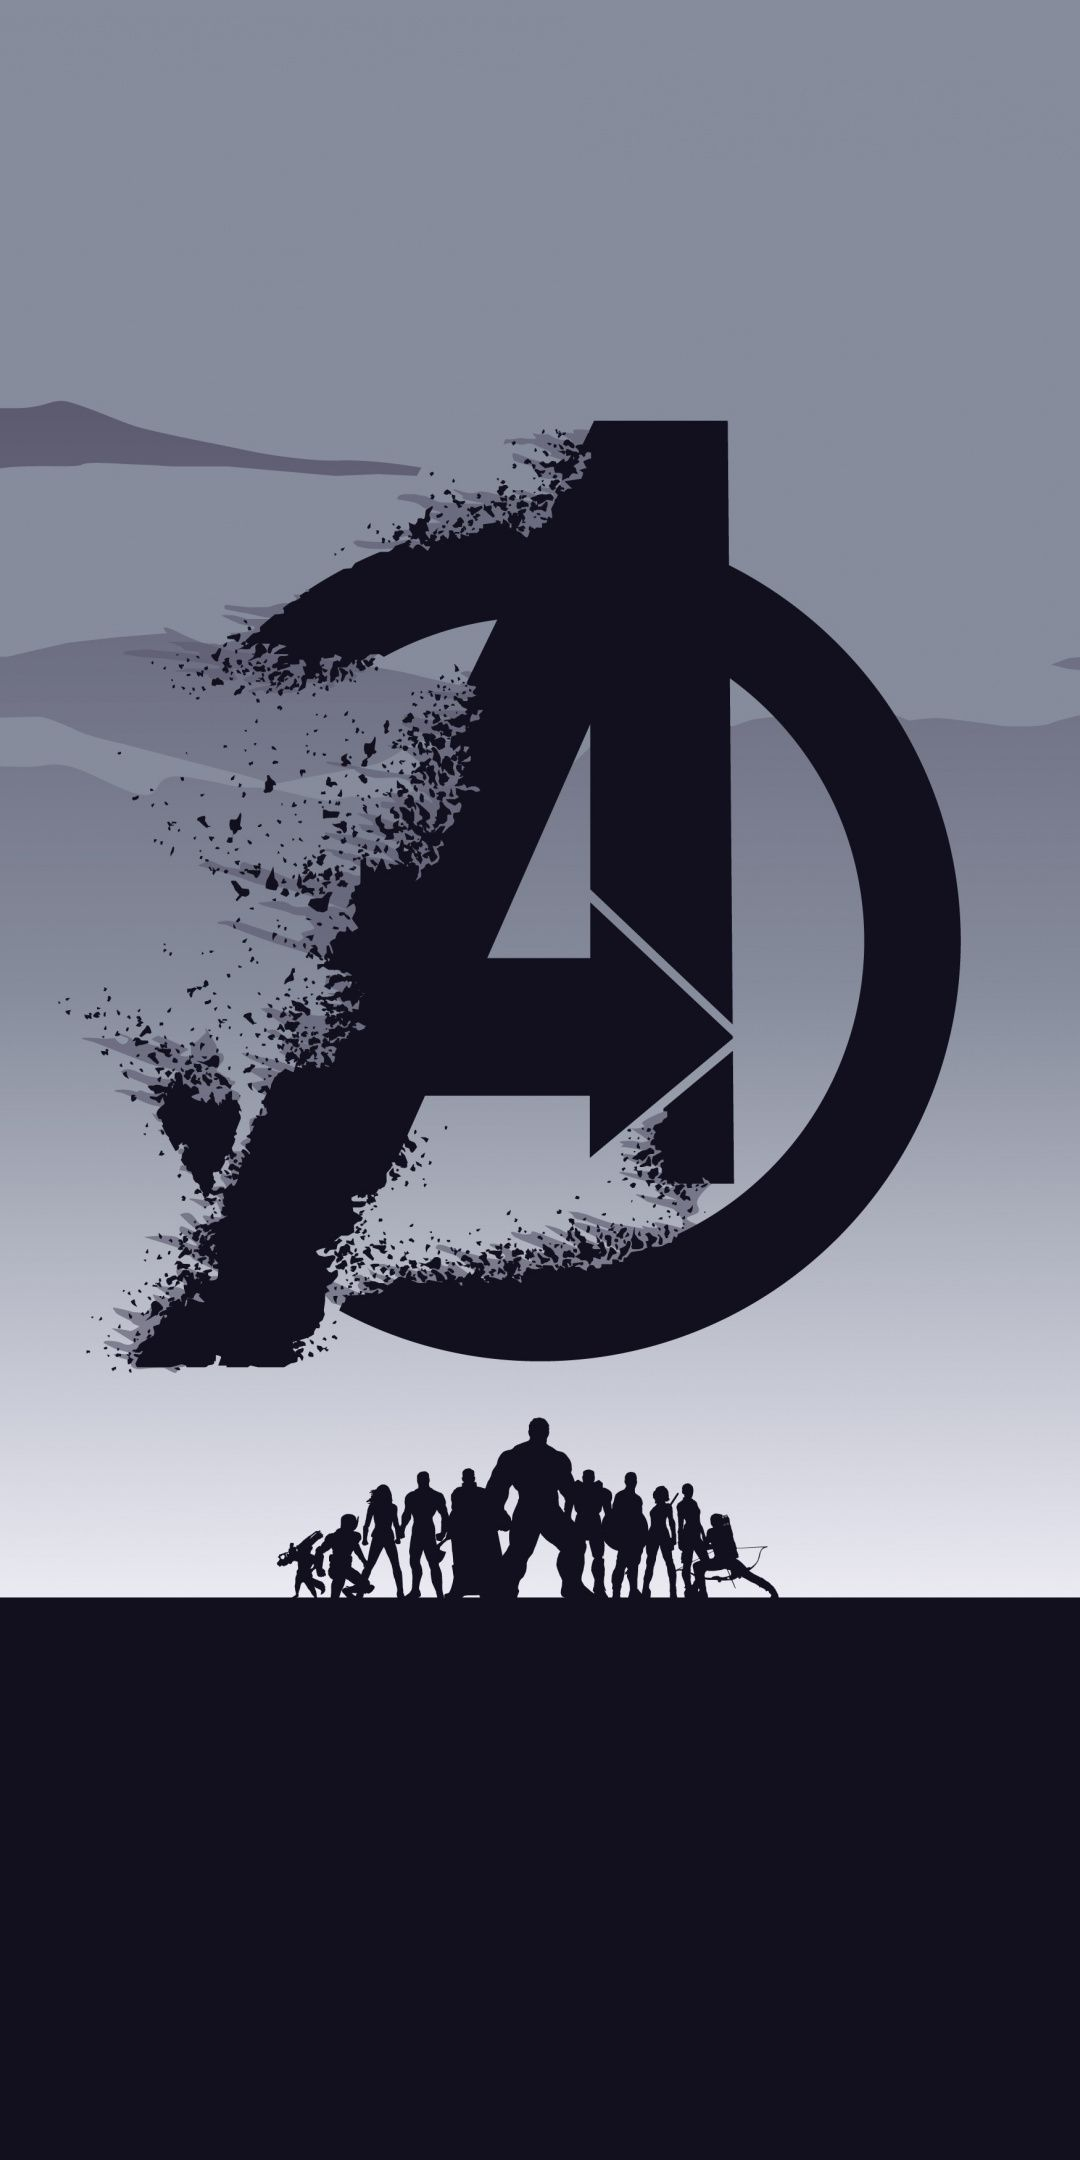 19 Movie Avengers Endgame Minimal Silhouette Art 1080x2160 Wallpaper Papel De Parede Vingadores Marvel Avengers Vingadores